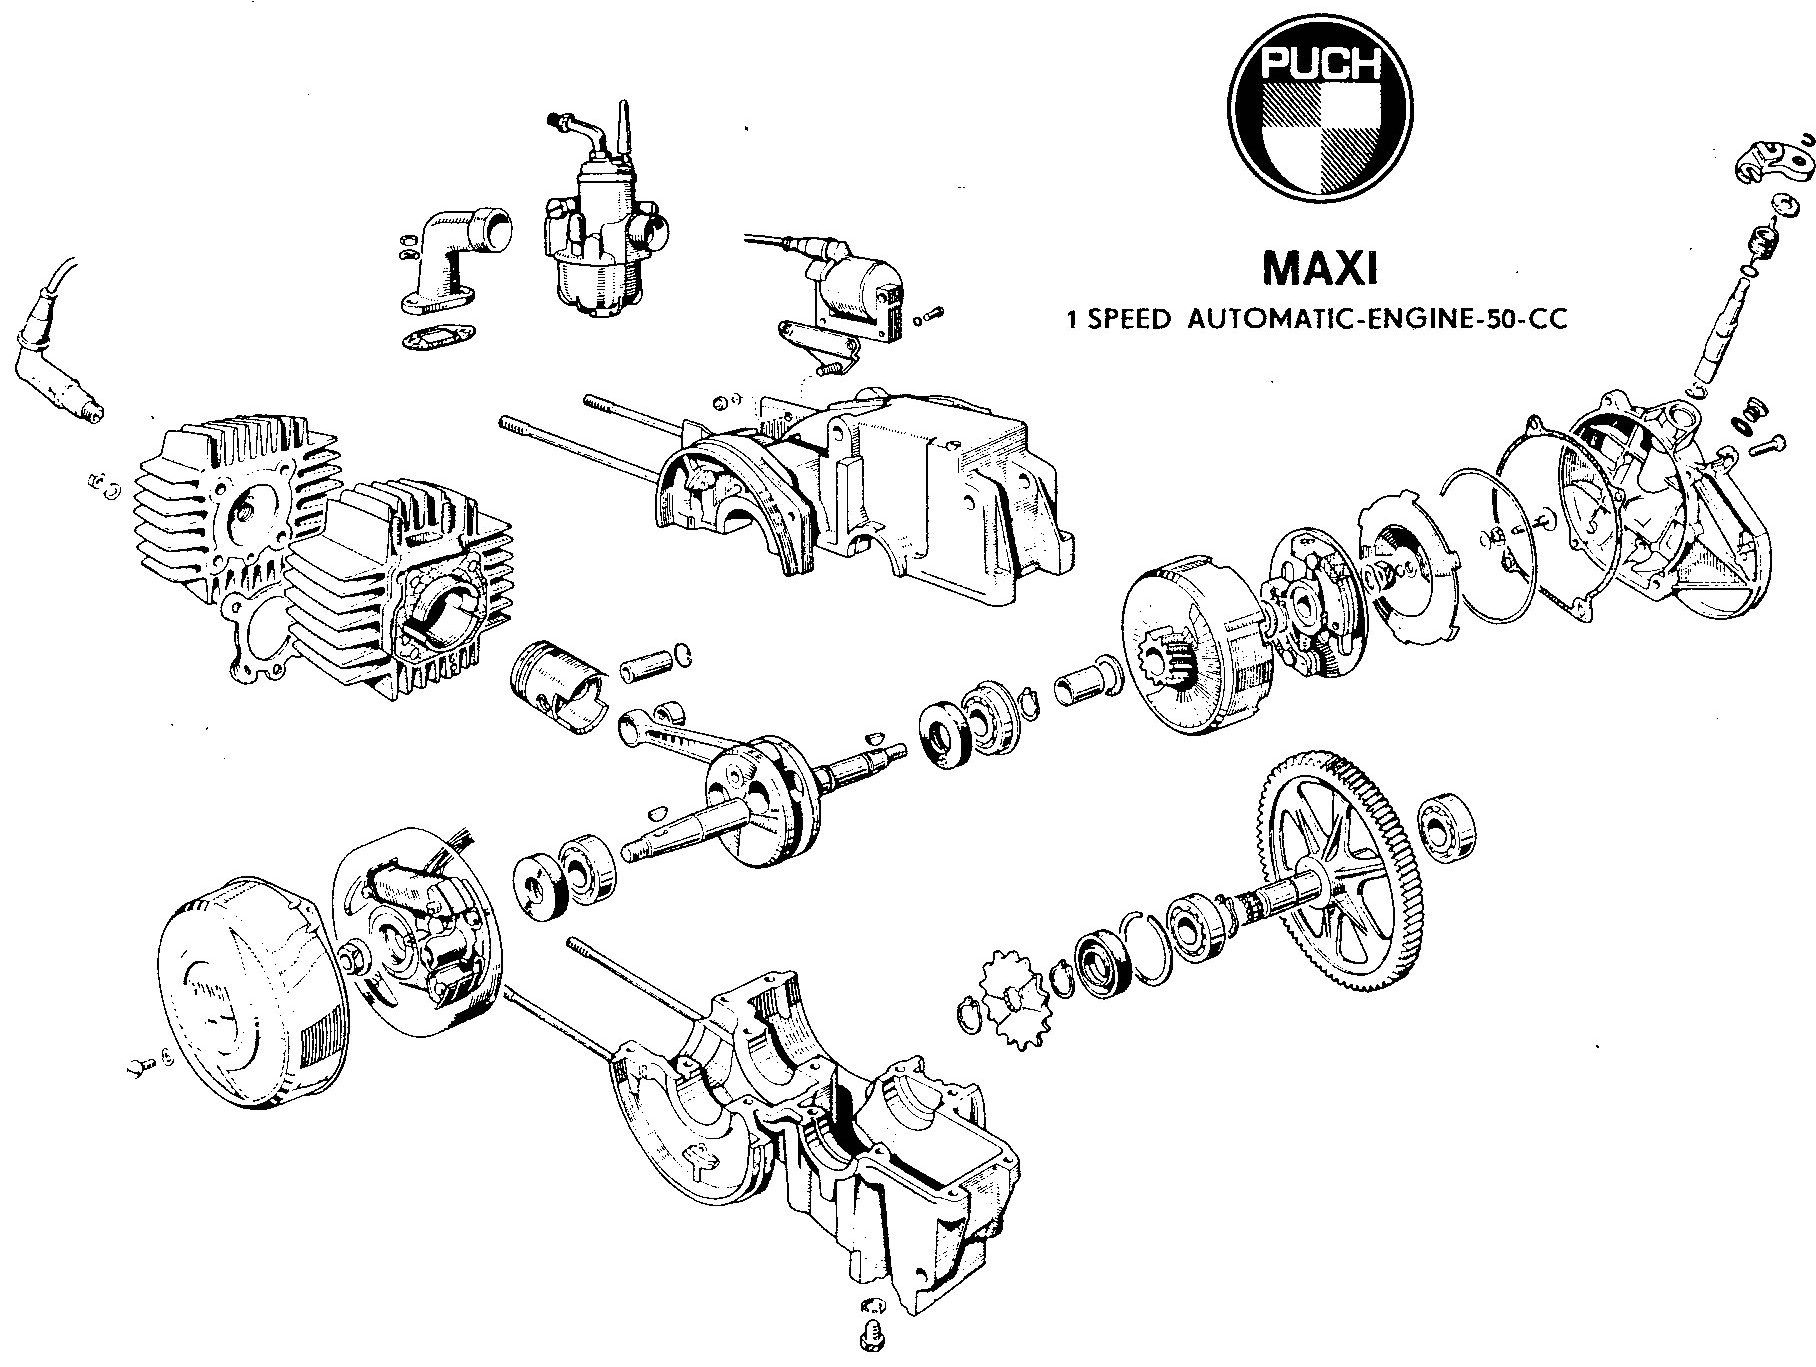 puch maxi wiring diagram newport free engine image for home electrical diagrams india luxe library